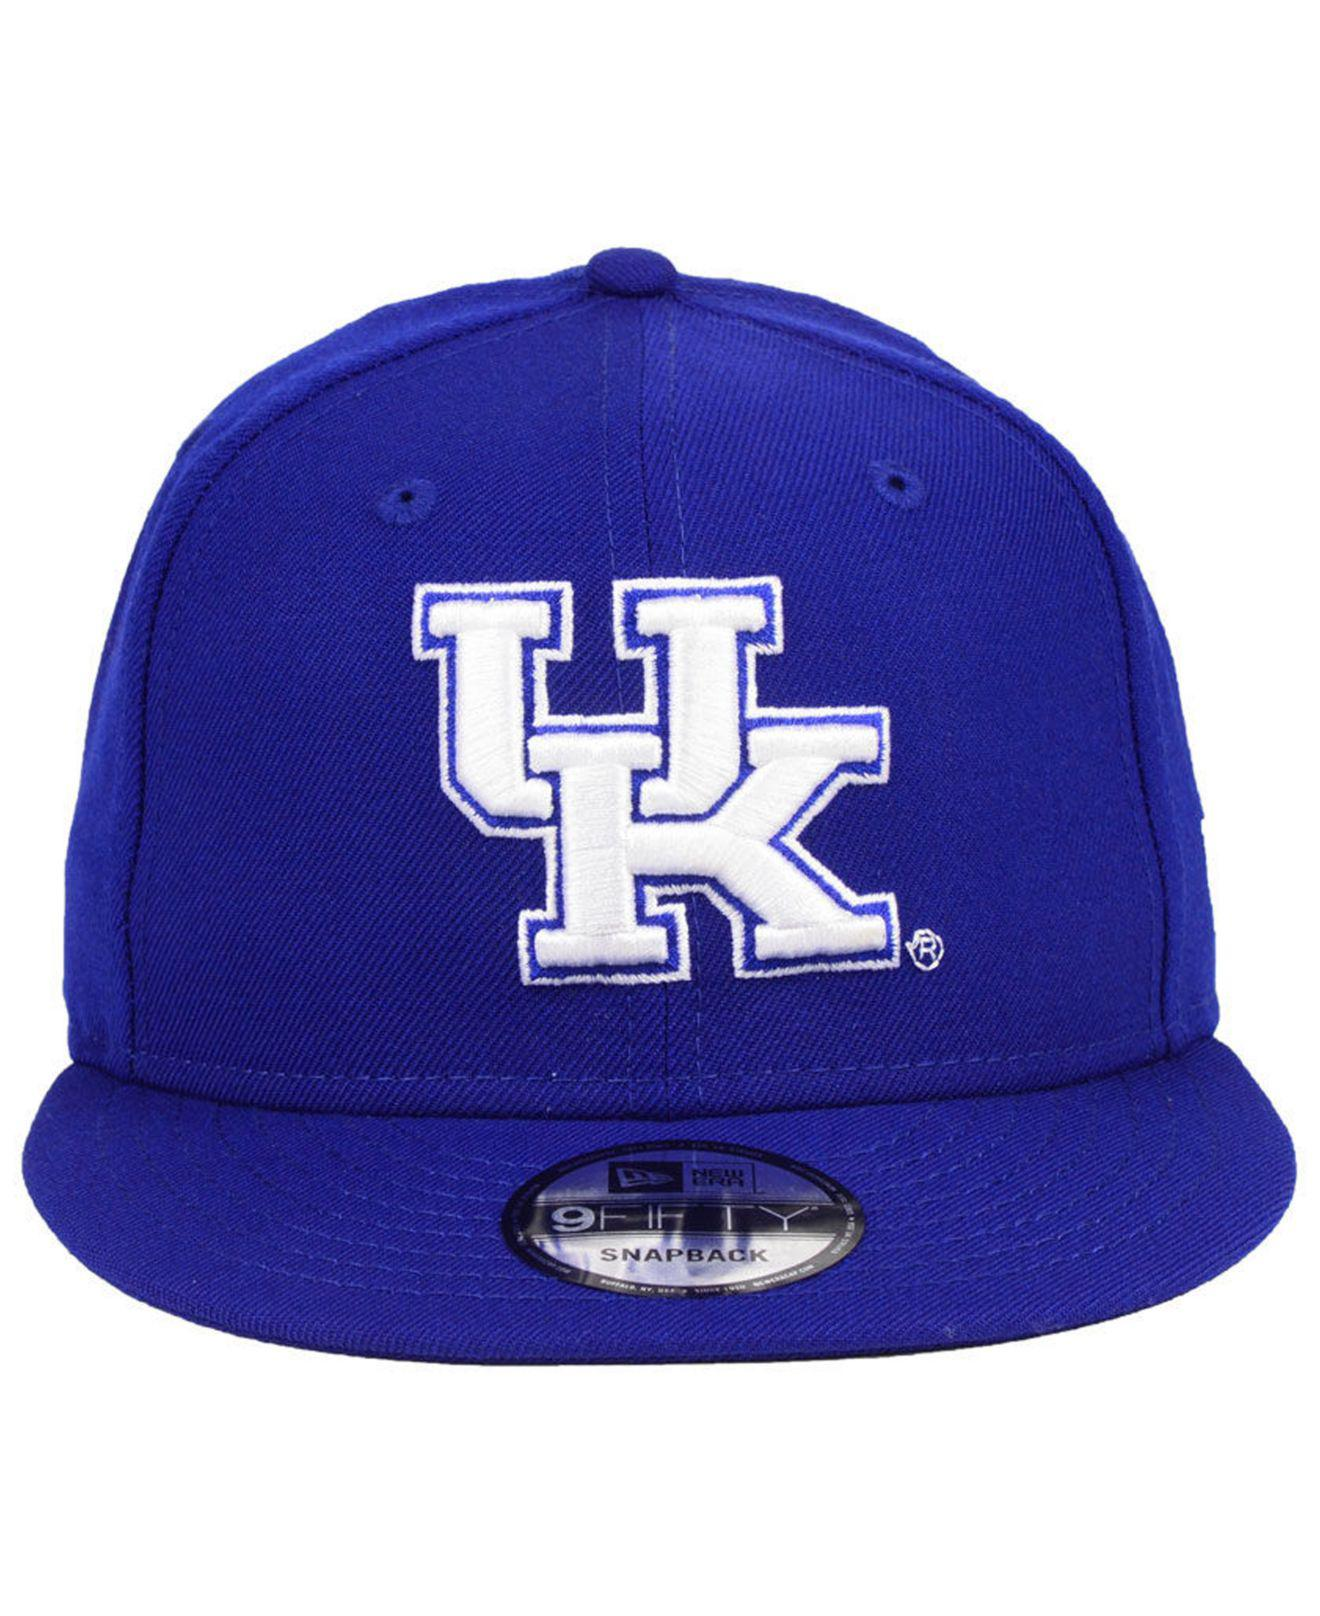 12ffe8dde4c Lyst - Ktz Kentucky Wildcats Core 9fifty Snapback Cap in Blue for Men